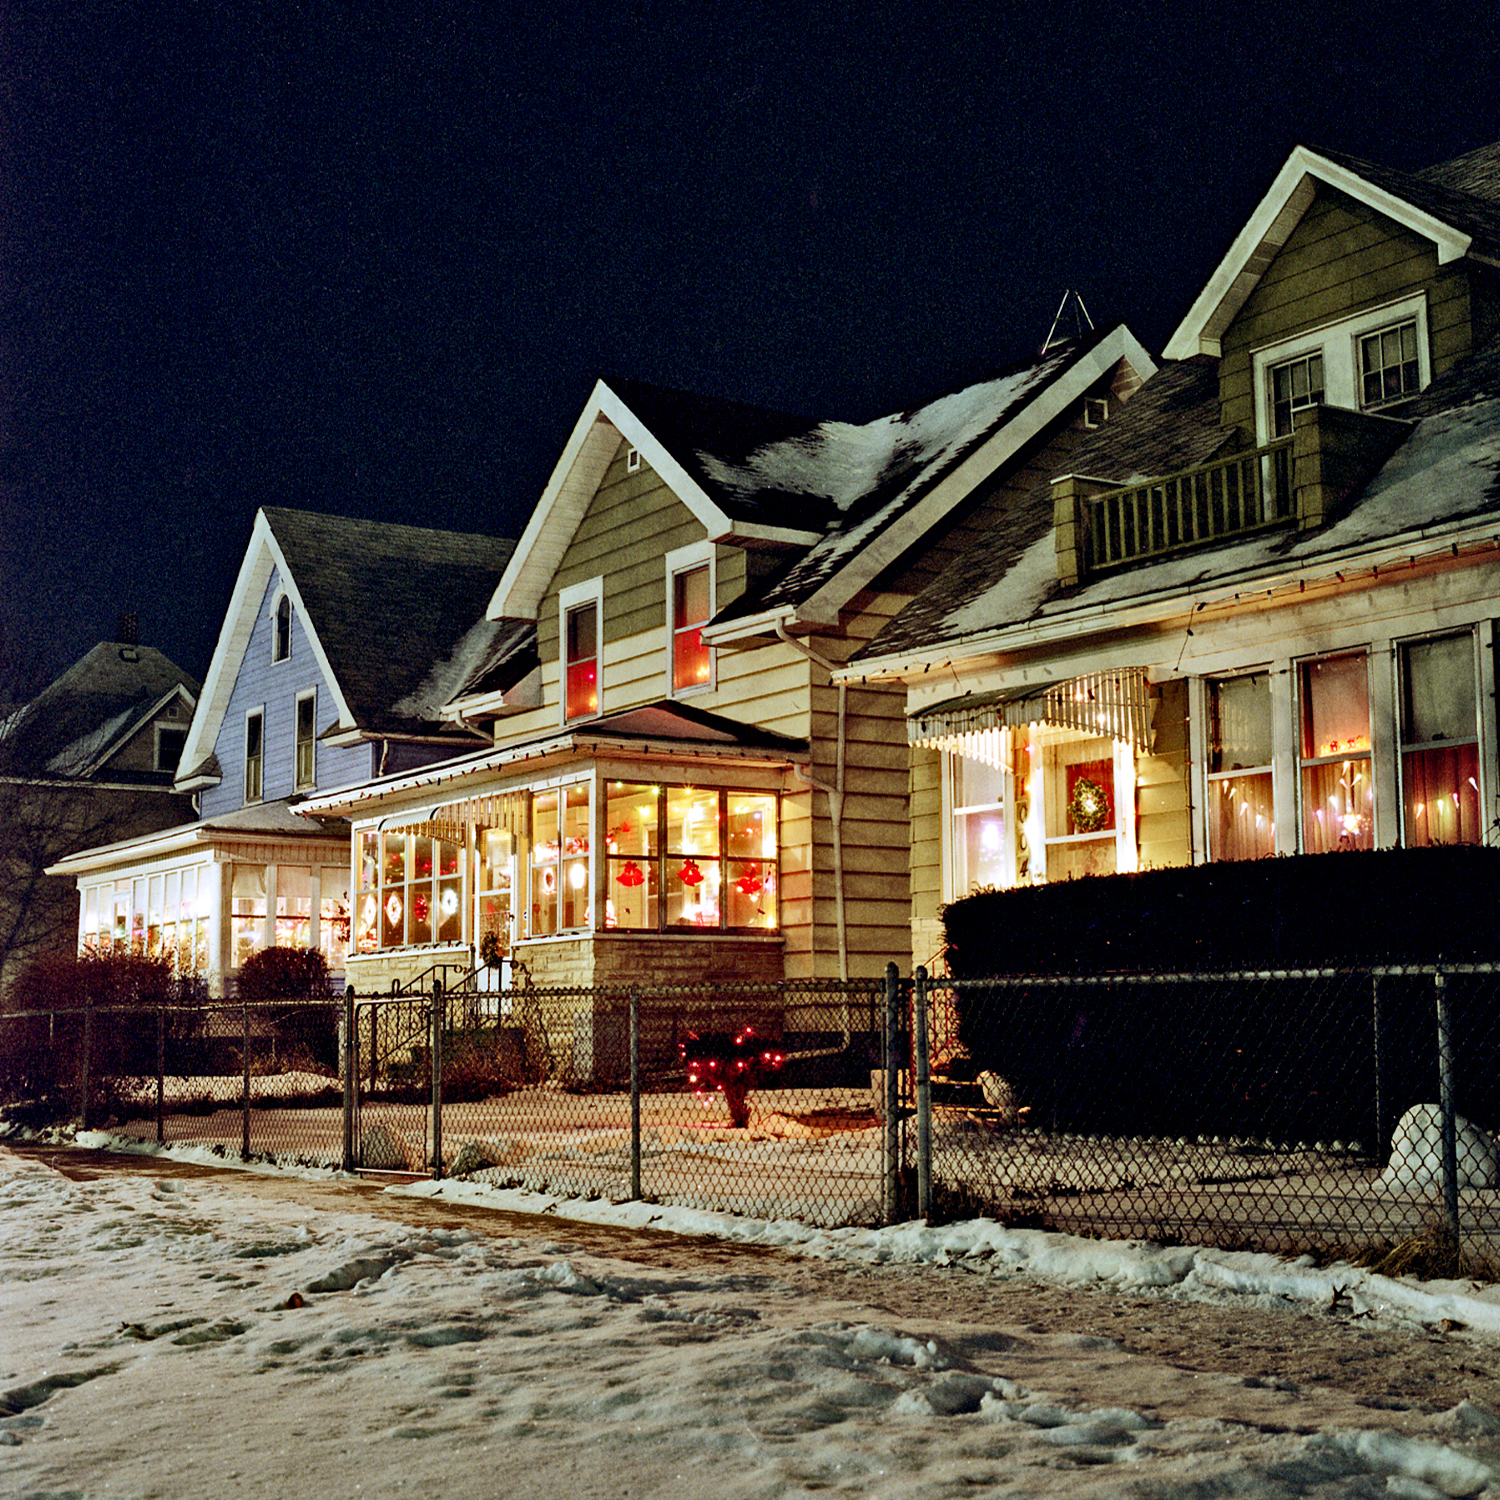 Aurora Avenue, Saint Paul, Minnesota. January 1990.